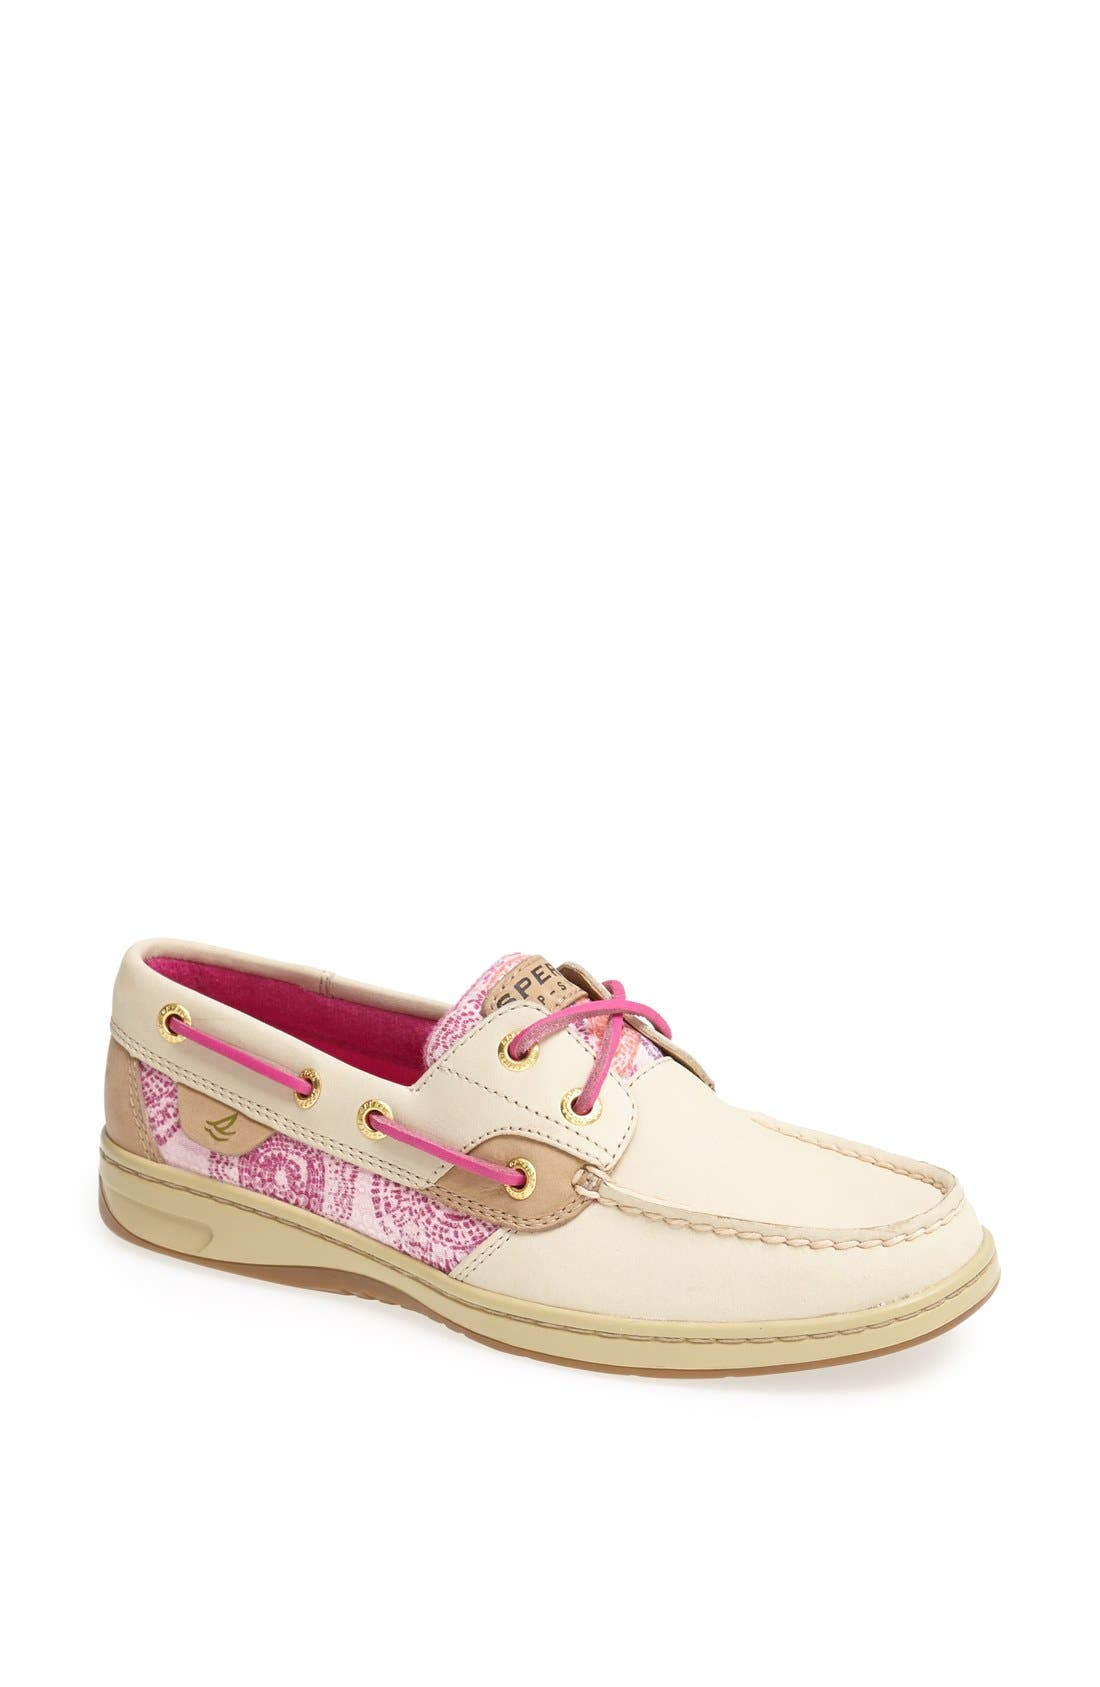 Alternate Image 1 Selected - Sperry 'Bluefish 2-Eye' Boat Shoe (Women)